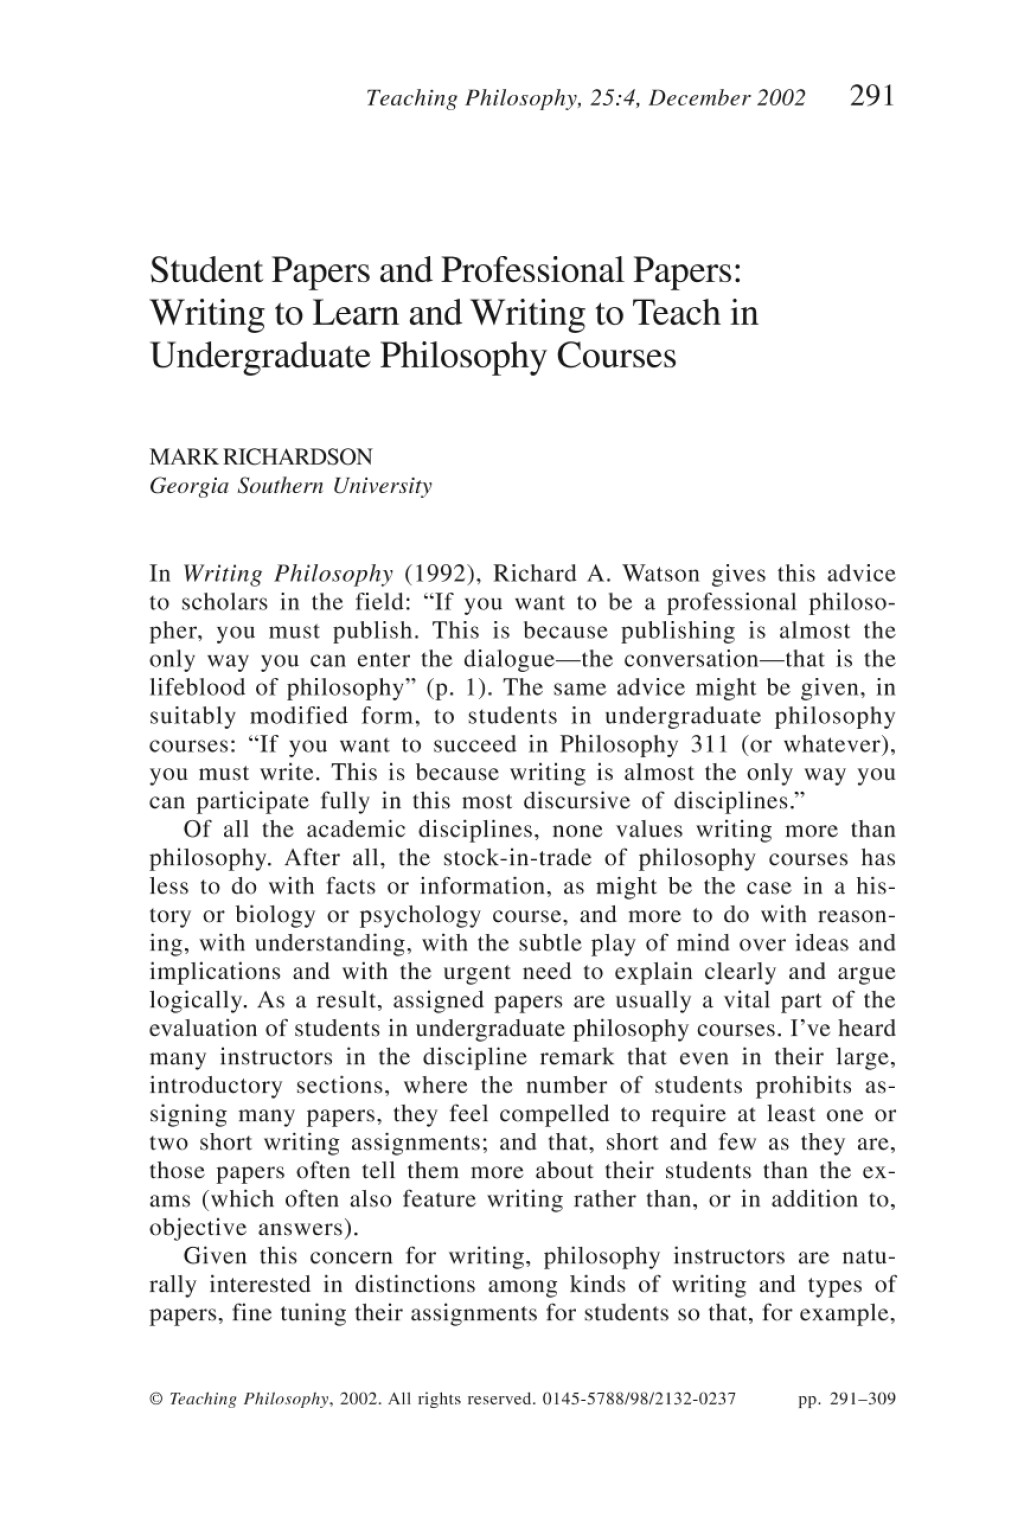 005 Essay Example Philosophy Of Teaching Personal Nursing Writing Paper Outline Pdf2imagepdfnameteachphil 2002 0025 0004 0291 For Beginners Political Format Dreaded My And Learning Education Pdf Large